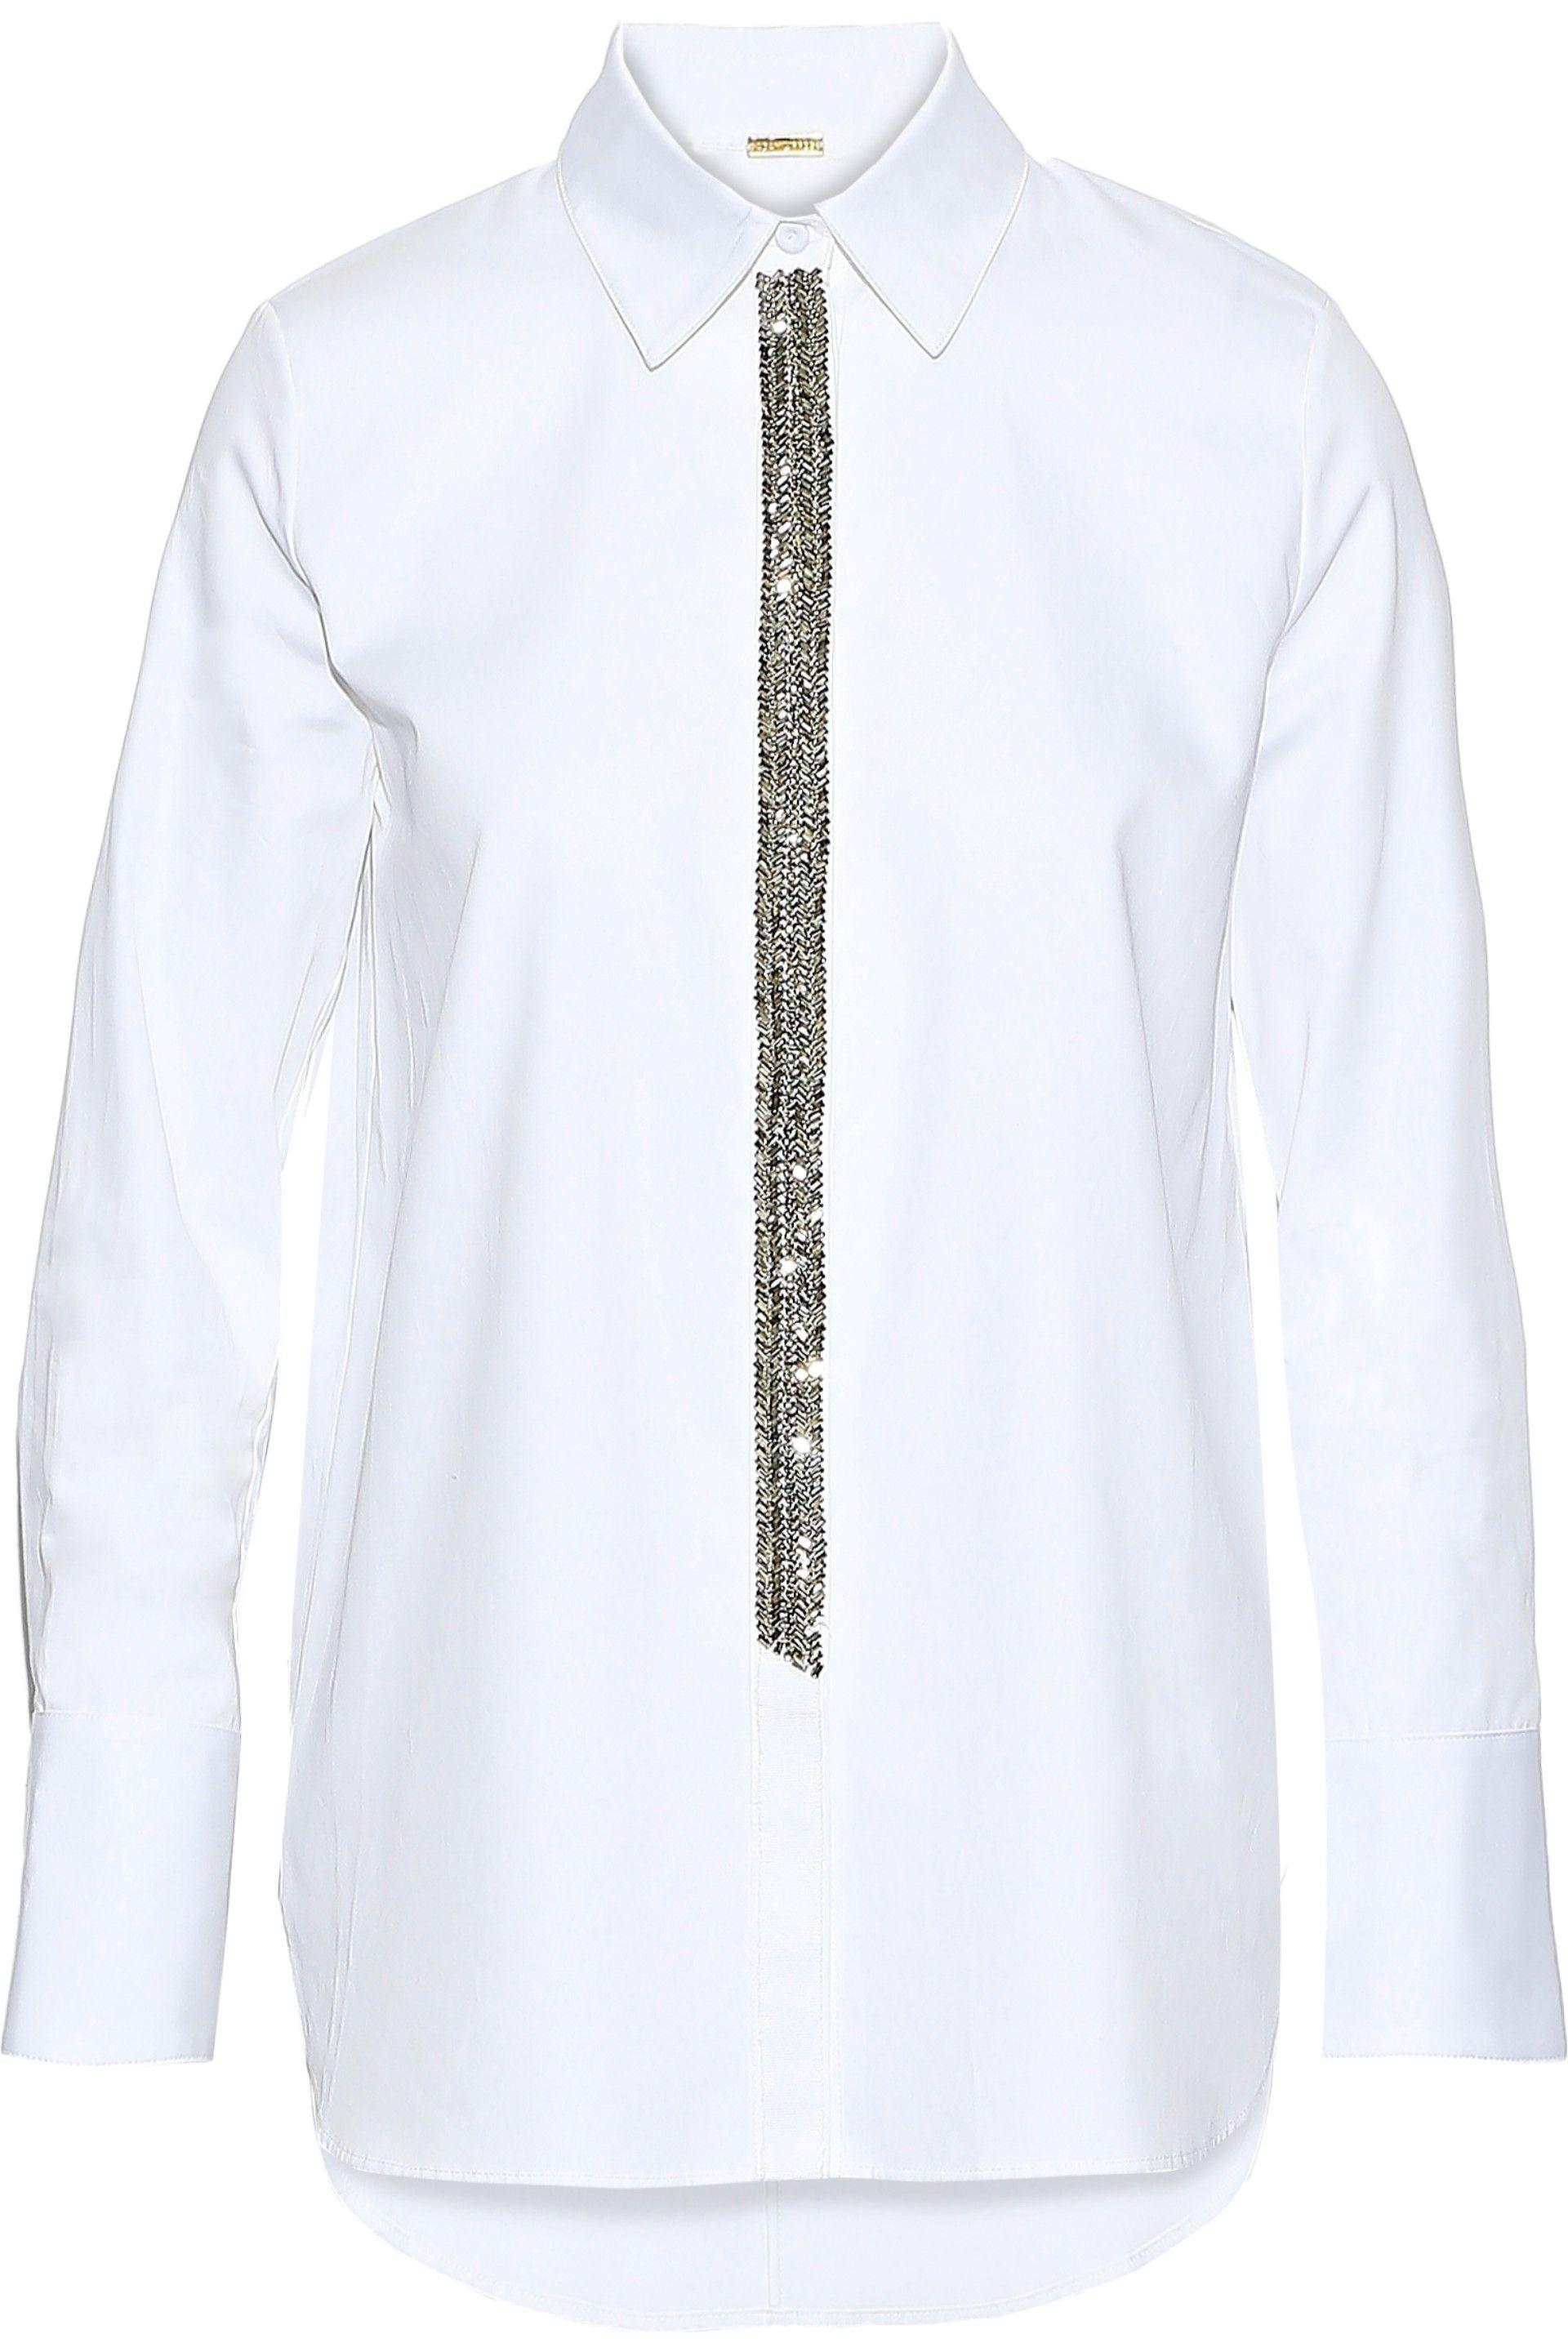 Free Shipping Huge Surprise Outlet 2018 Unisex Adam Lippes crystal embellished hem T-shirt Clearance Looking For Cheap Sale Footlocker Finishline For Cheap WaY8wcA24X